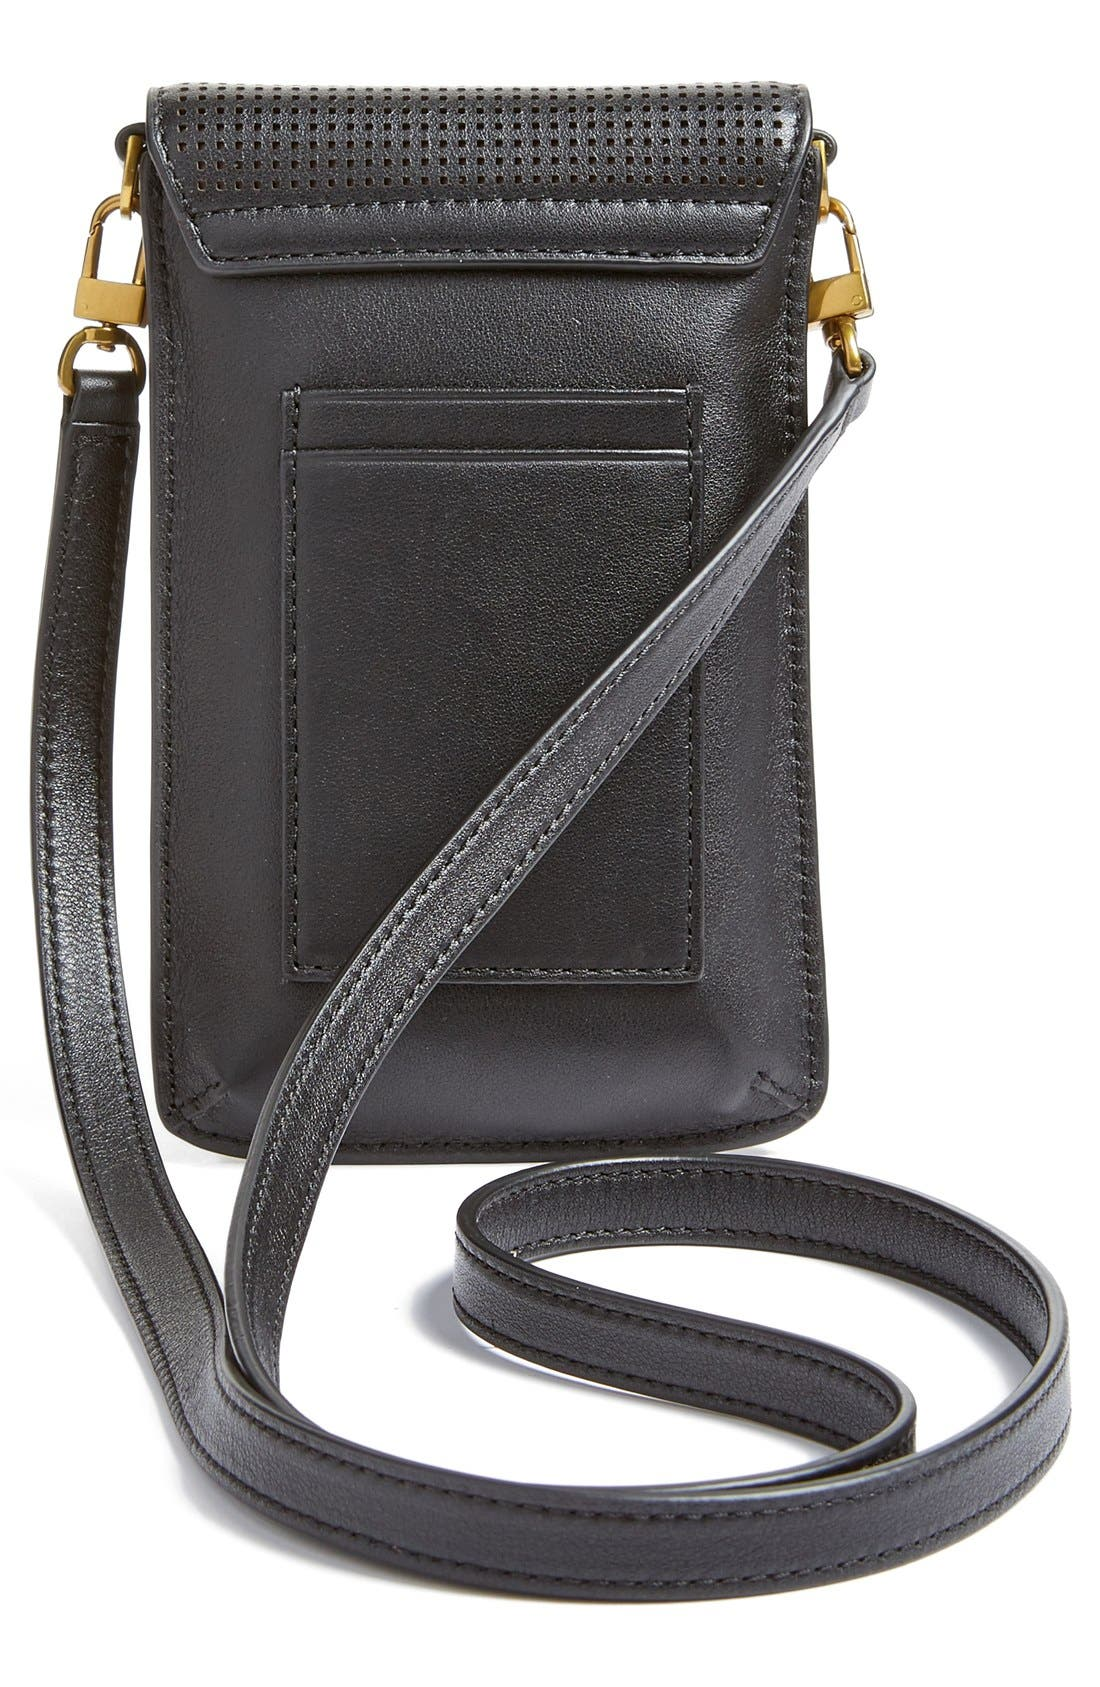 Alternate Image 2  - Tory Burch Perforated Leather Smartphone Crossbody Bag